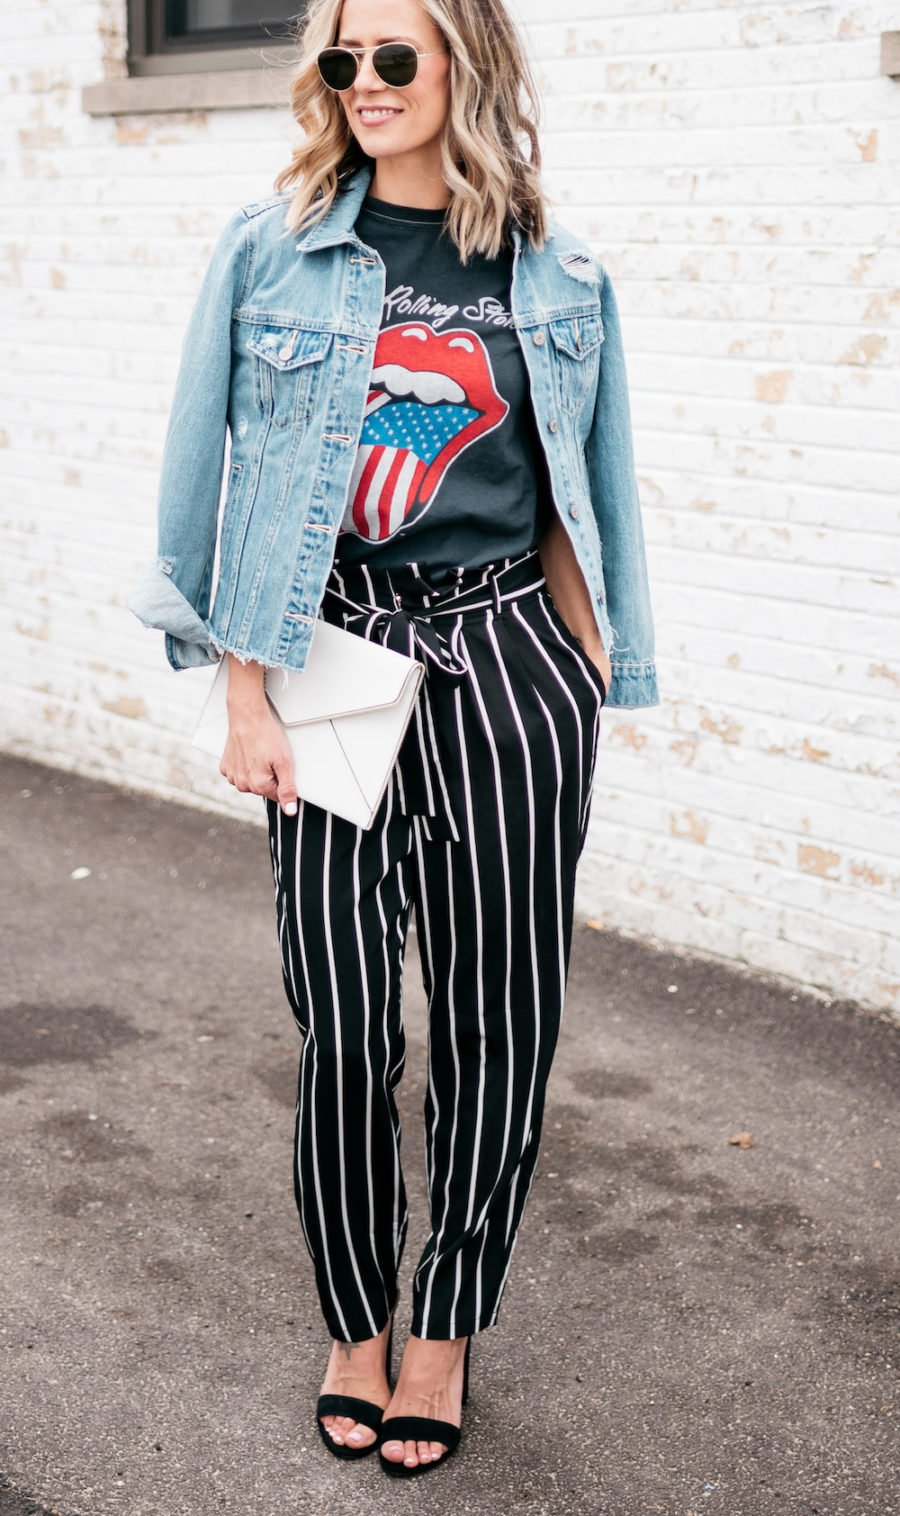 Band tee, striped pants, denim jacket, heels, clutch